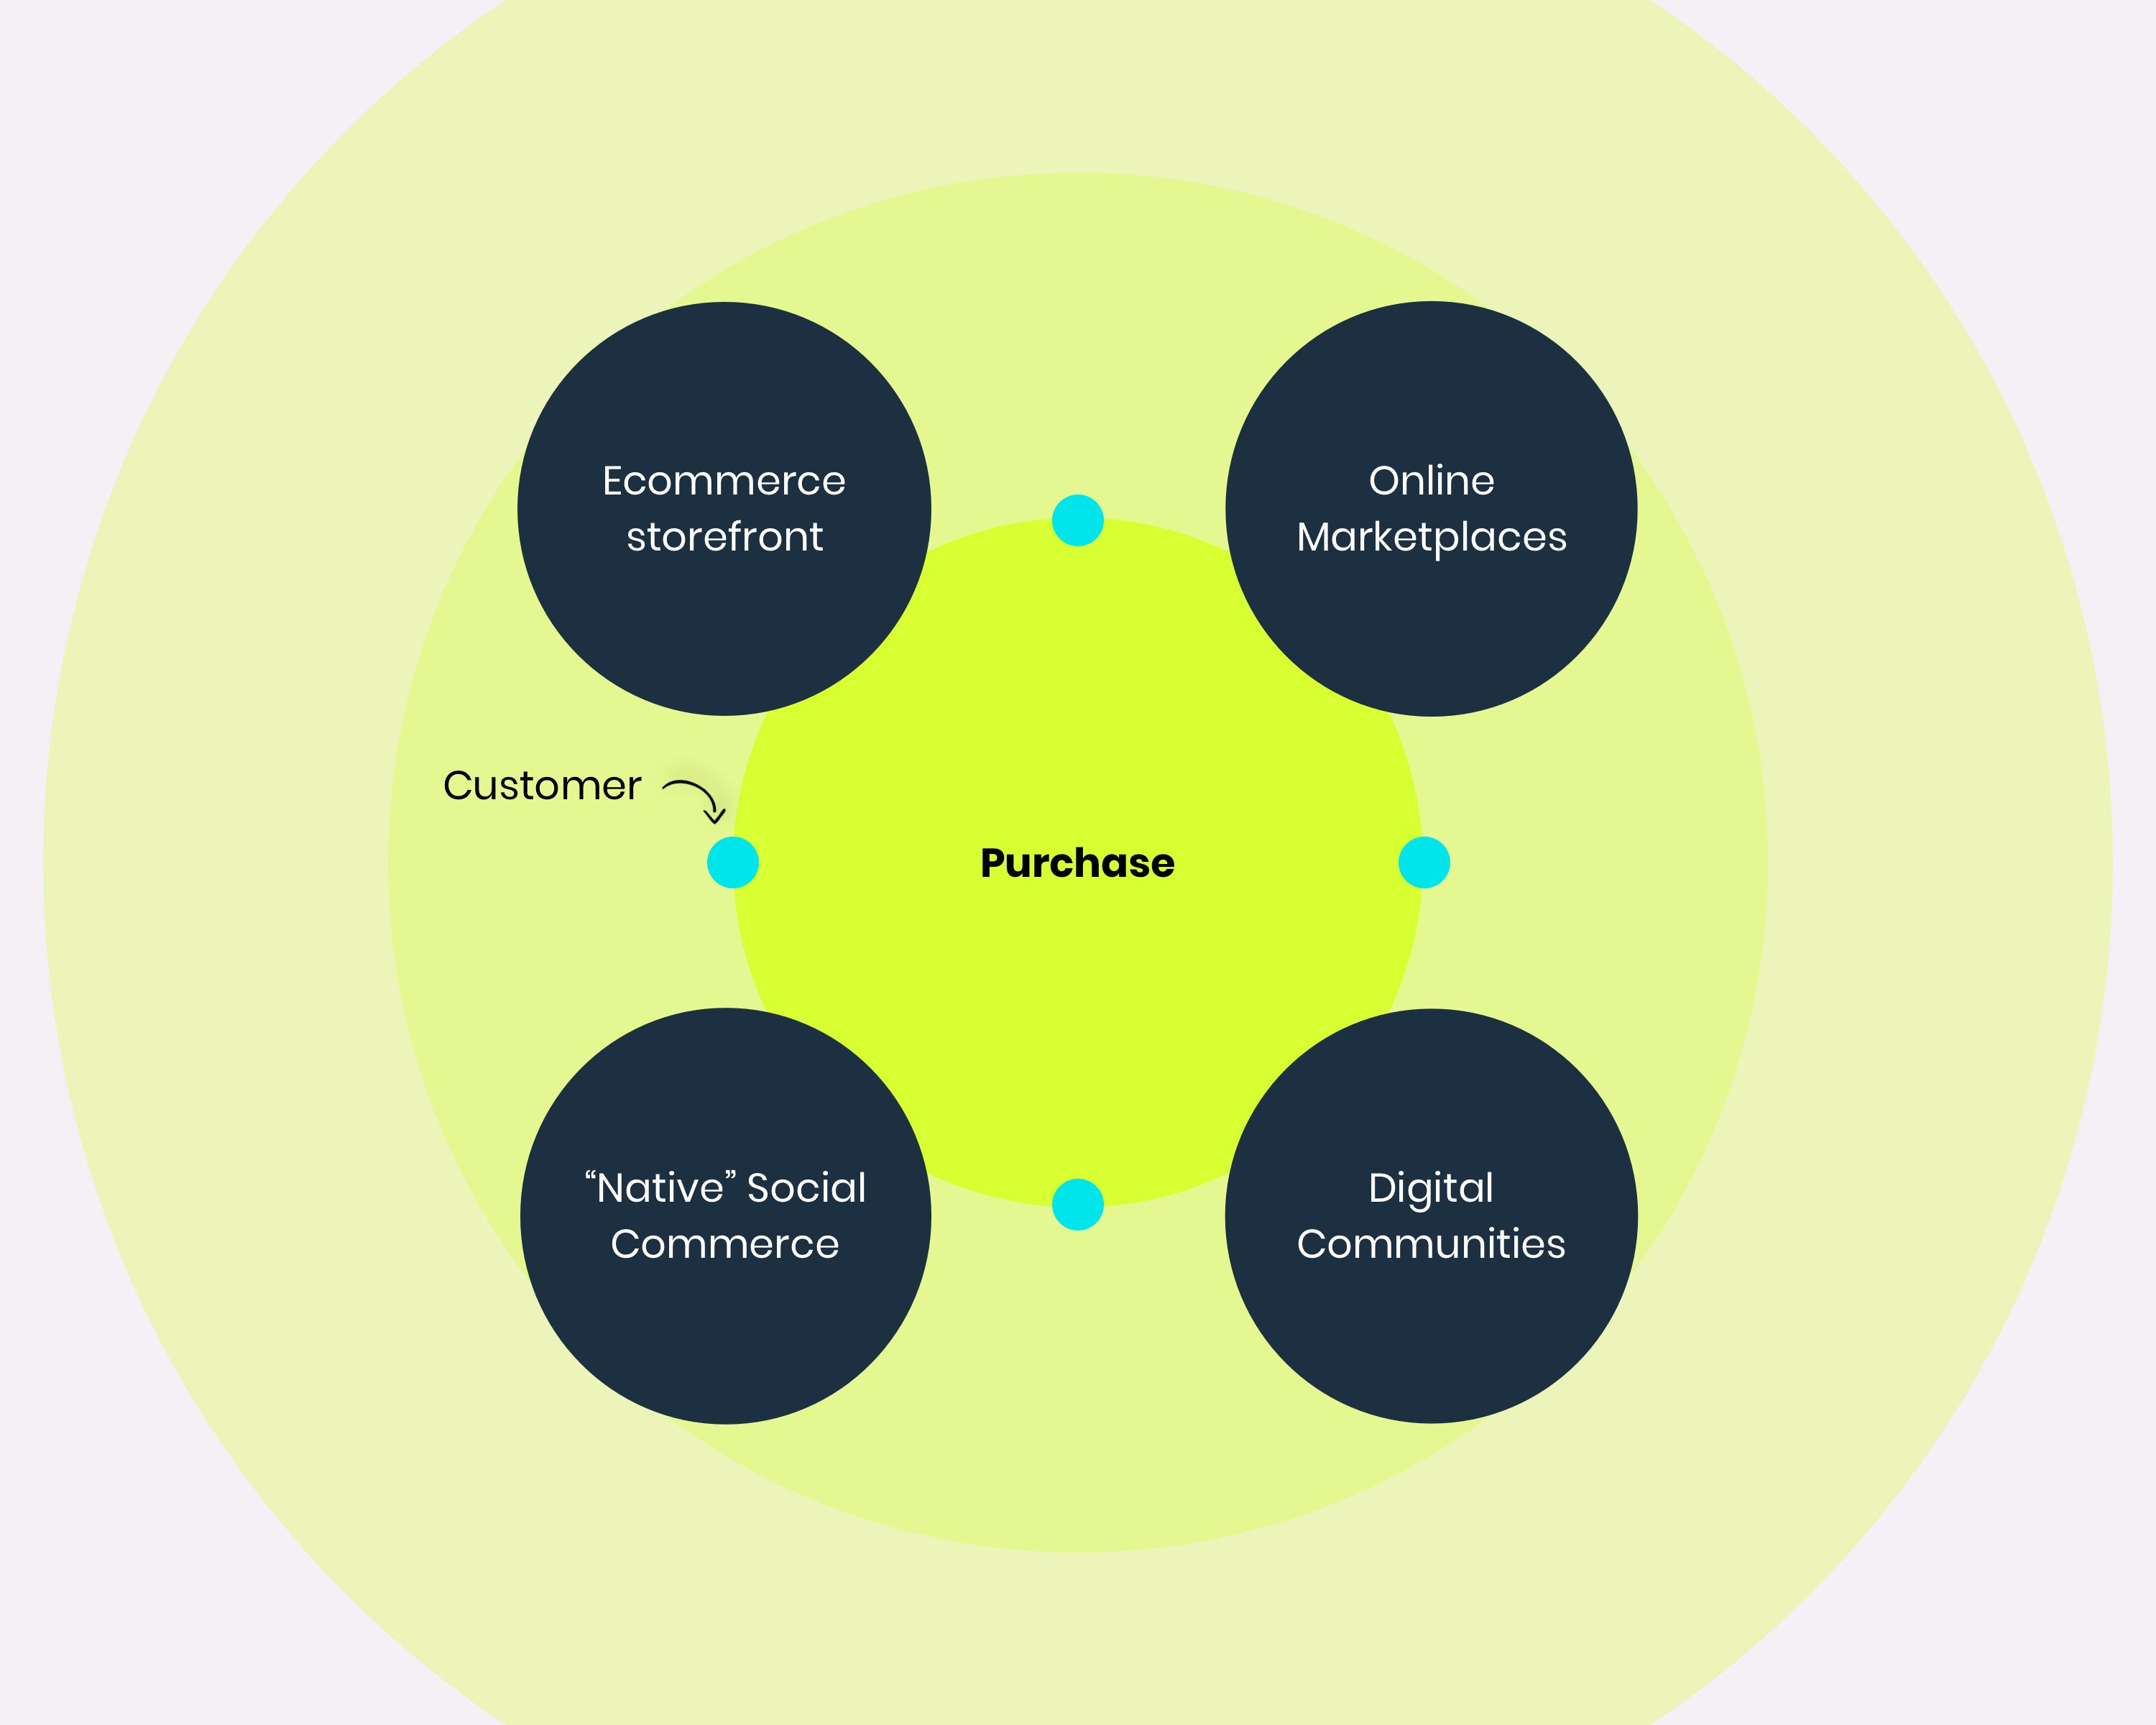 Multi-channel ecommerce model